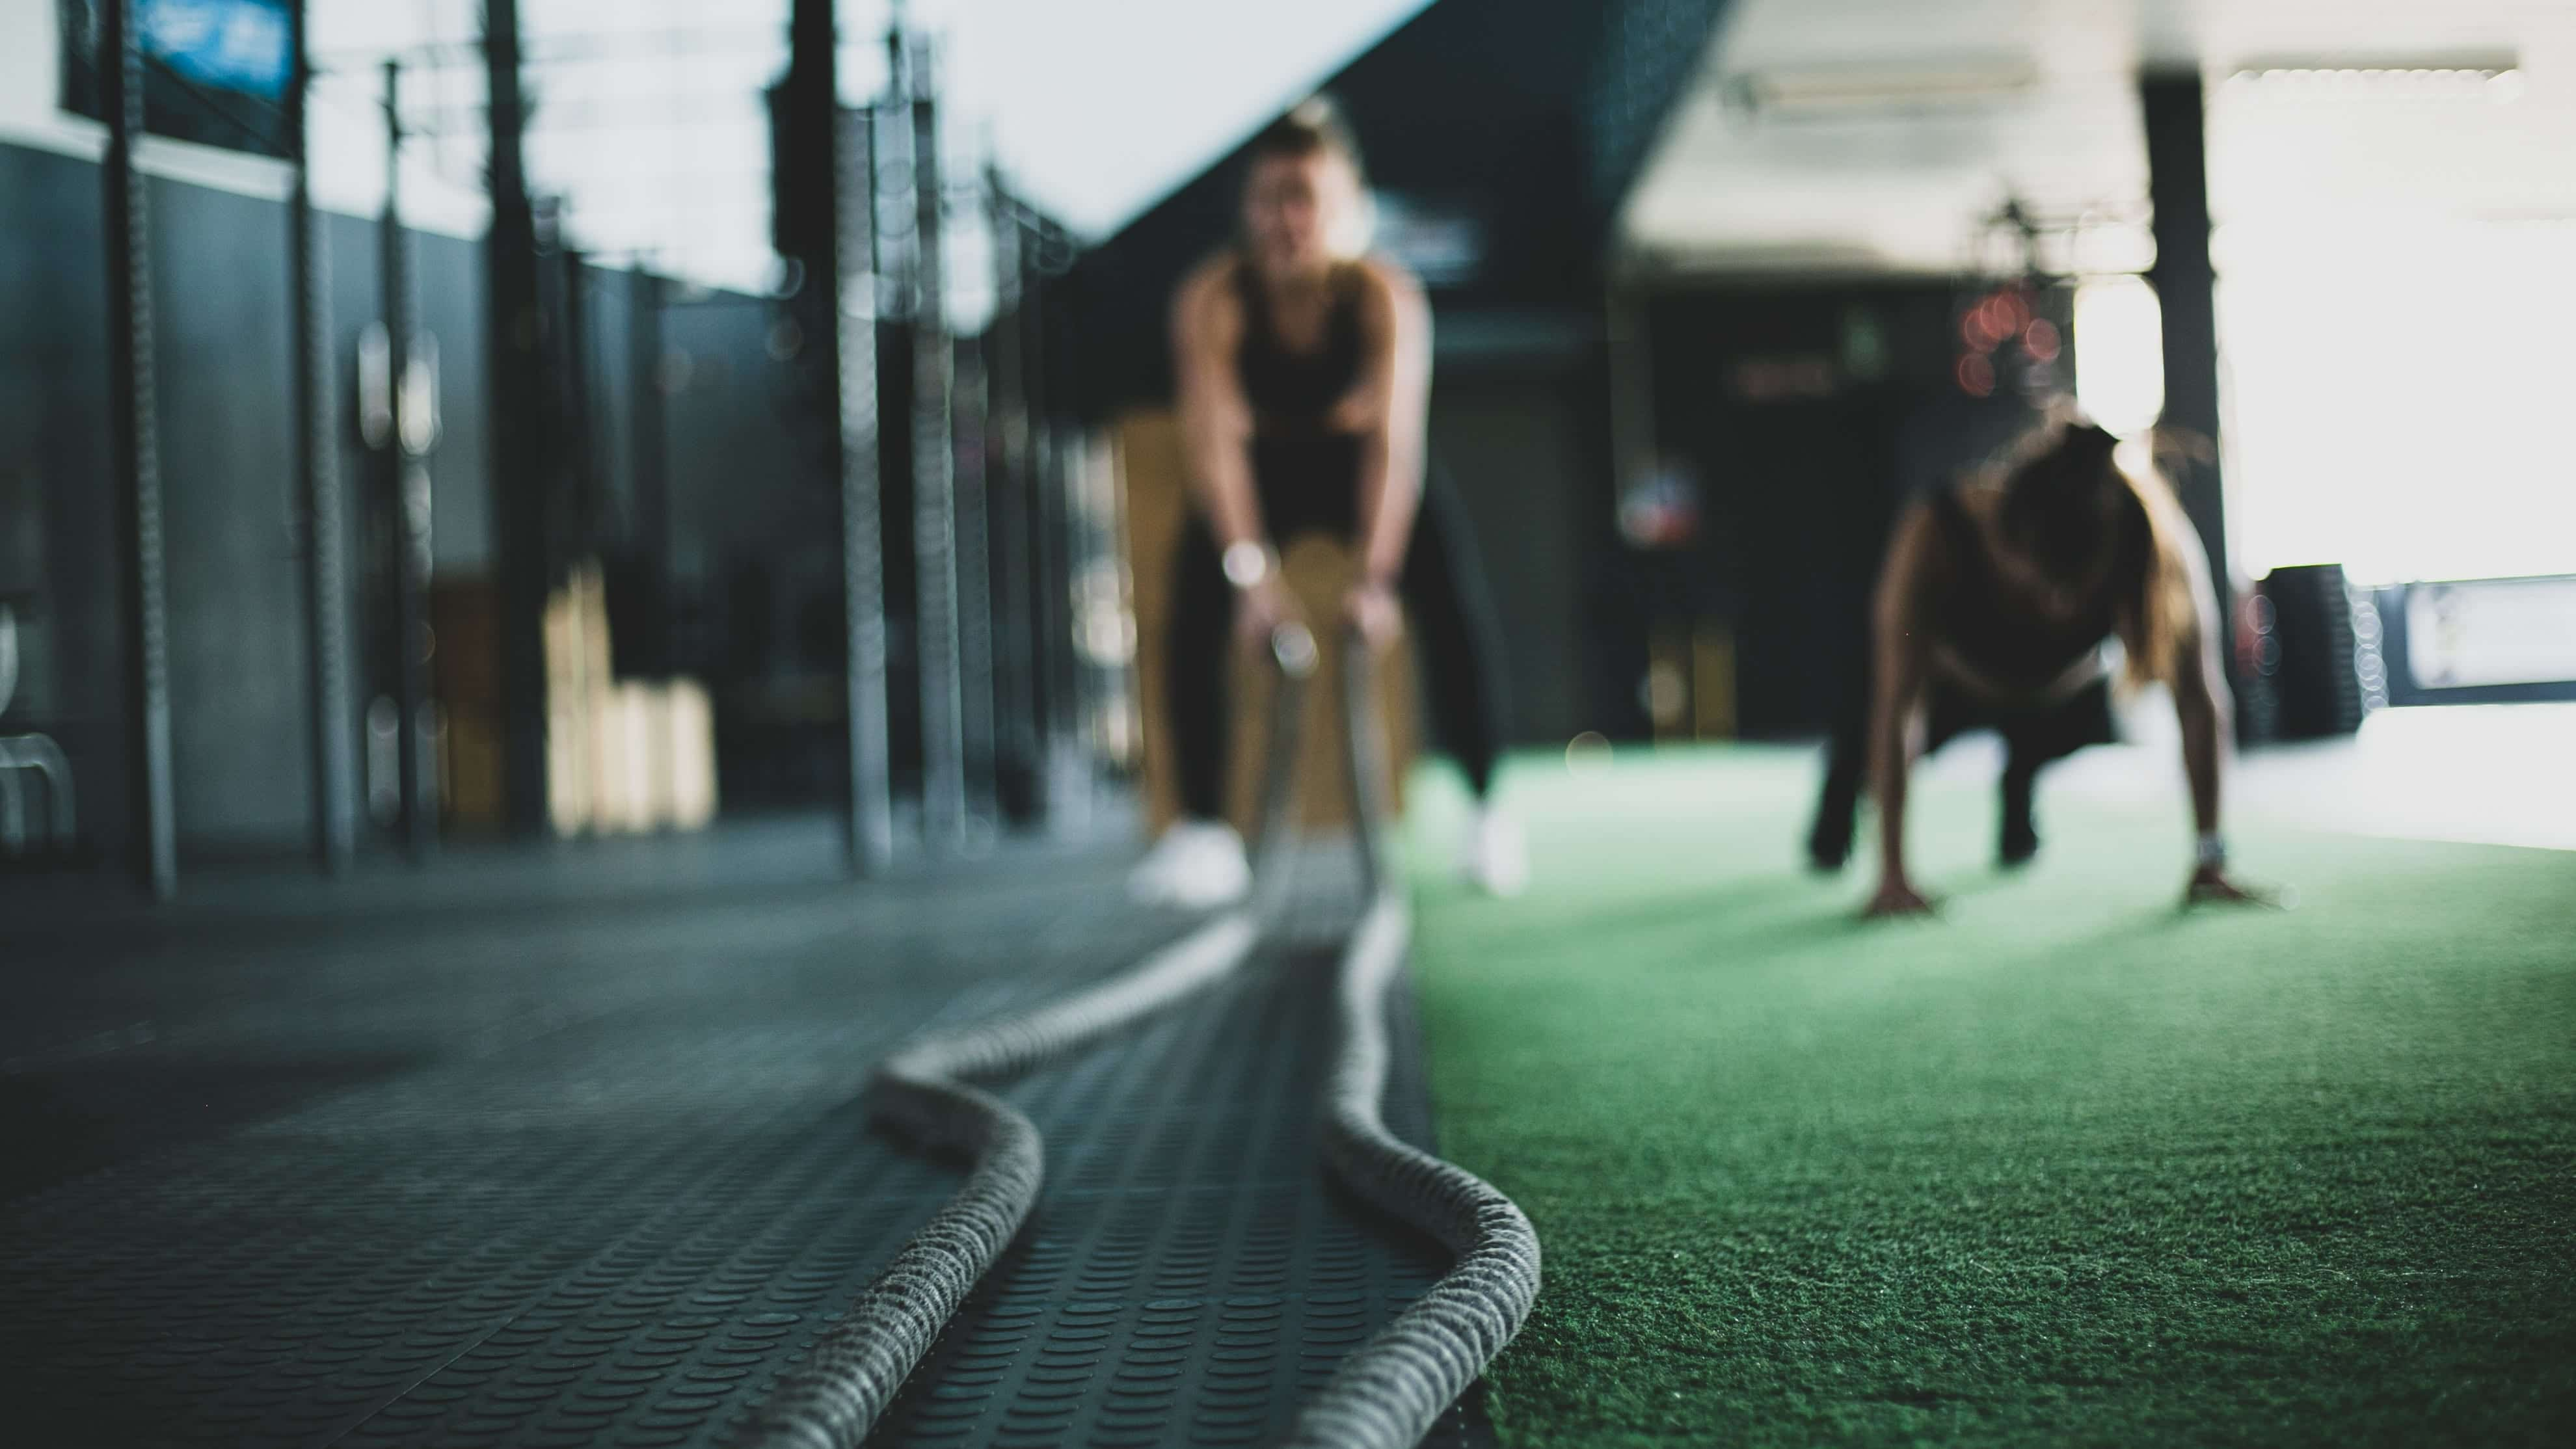 One woman doing push-ups and another using battle ropes at the gym; image by Meghan Holmes, via Unsplash.com.